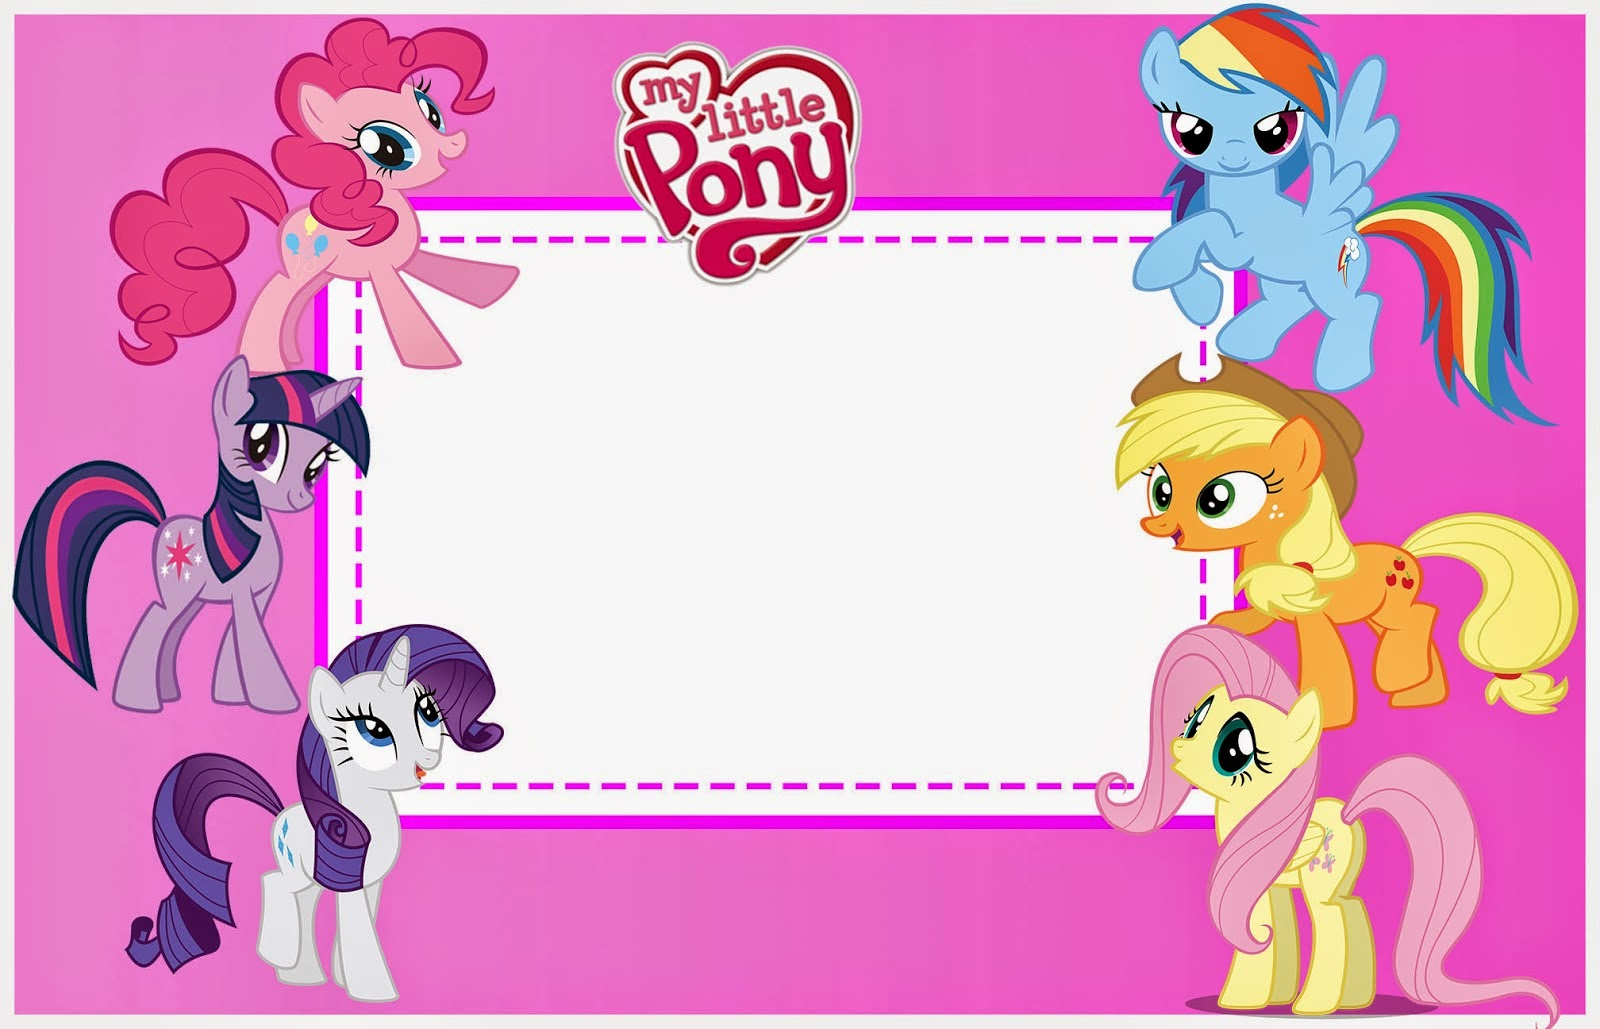 picture about My Little Pony Printable referred to as My Small Pony Absolutely free Printable Package. - Oh My Fiesta! for Geeks